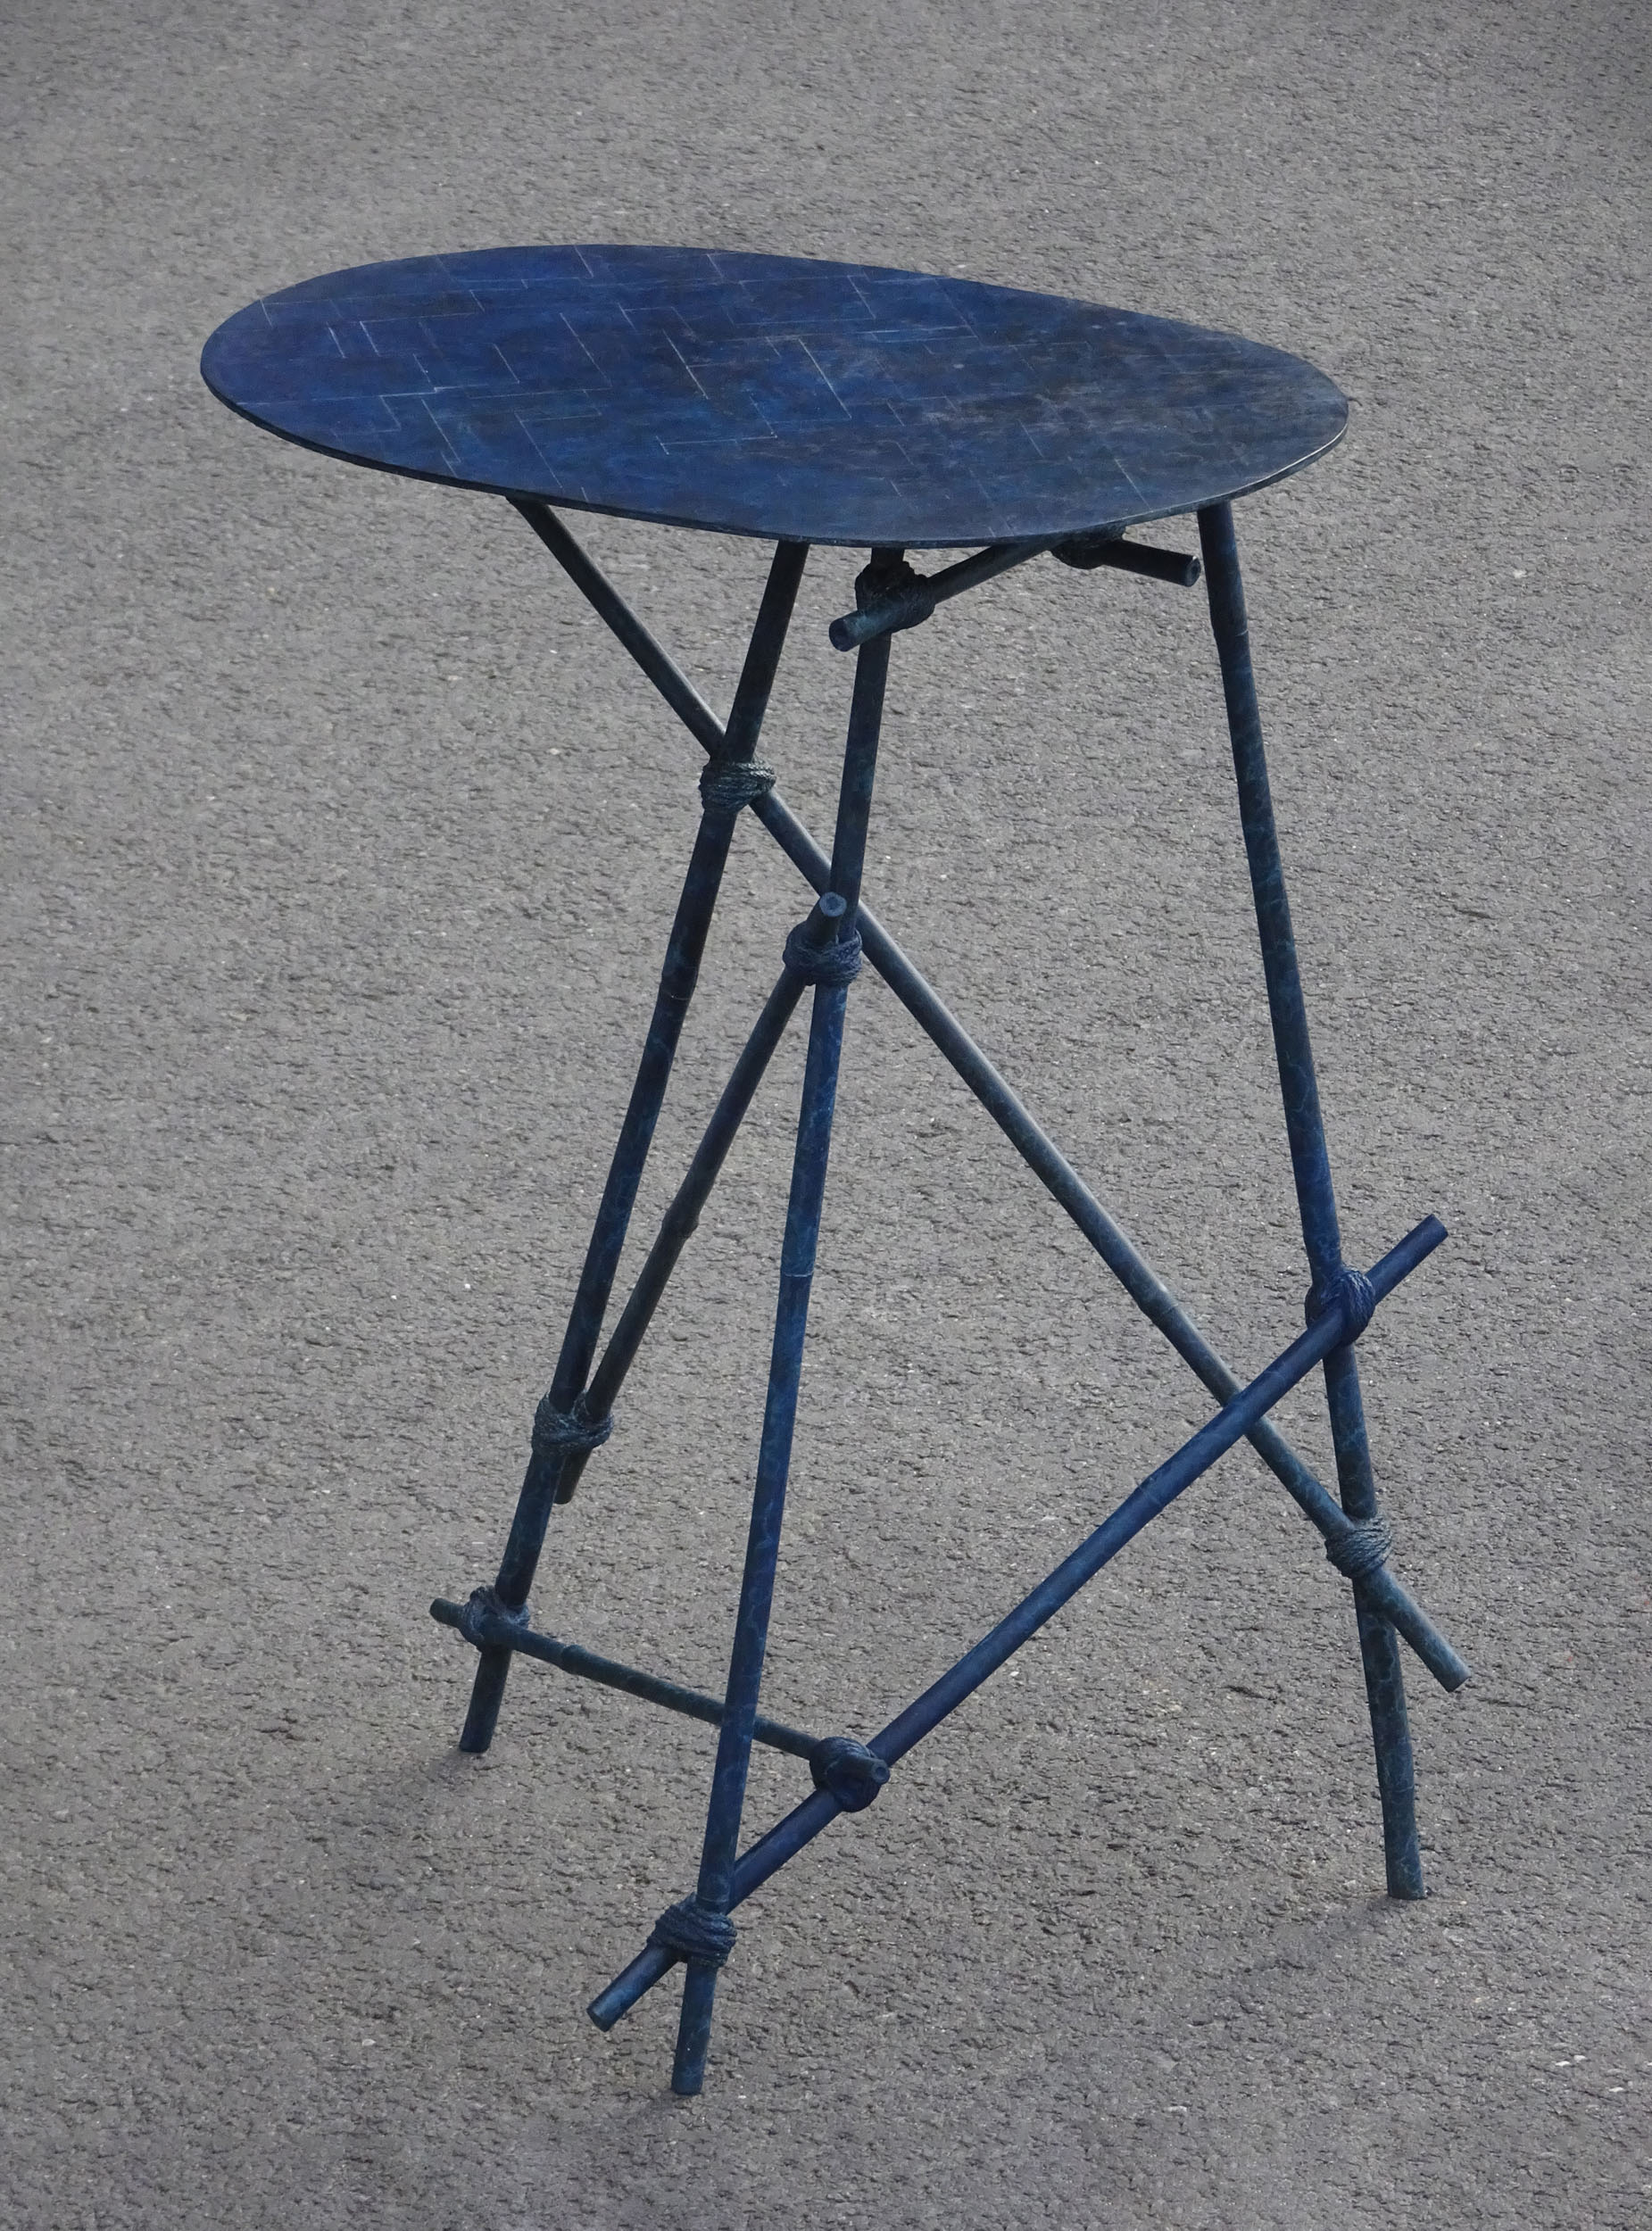 En Route side table with bronze cast bamboo frame in blue patina